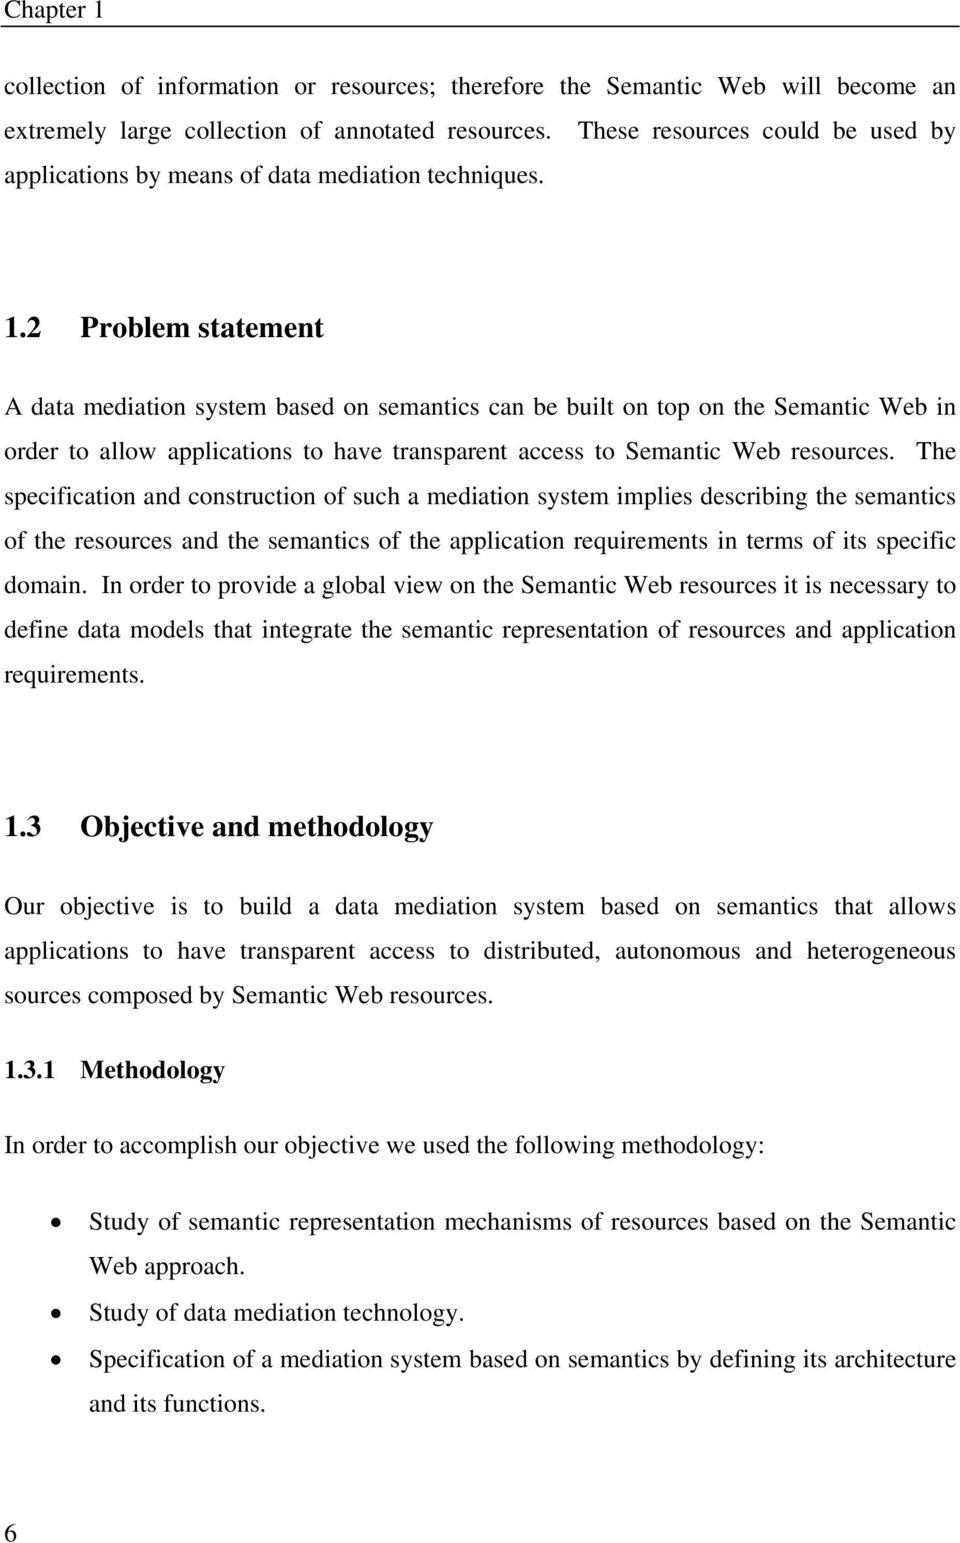 2 Problem statement A data mediation system based on semantics can be built on top on the Semantic Web in order to allow applications to have transparent access to Semantic Web resources.